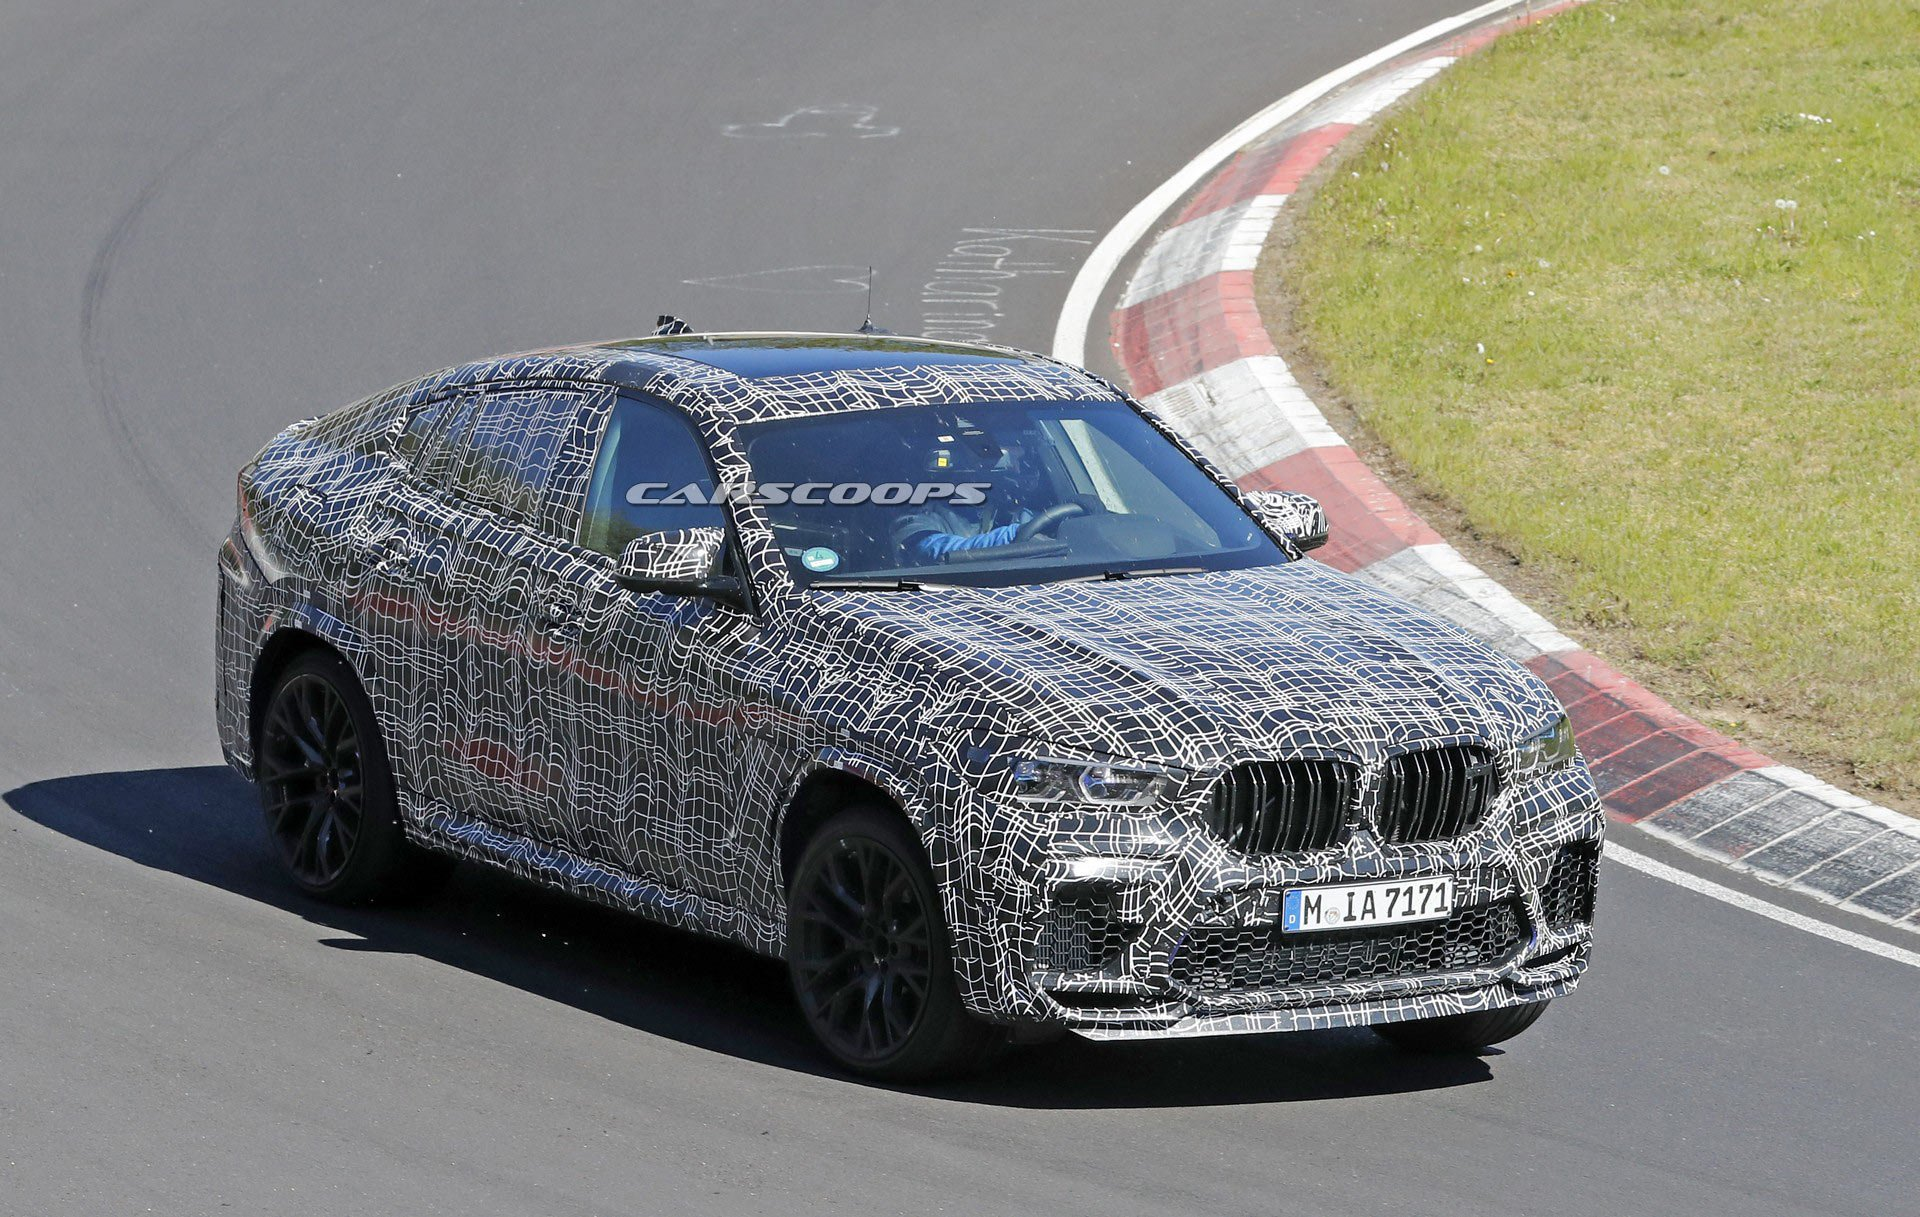 We have seen multiple development mules of the BMW X6 M over the past few years, but this is the first time that the coupe-SUV actually seems to have less mascara on it